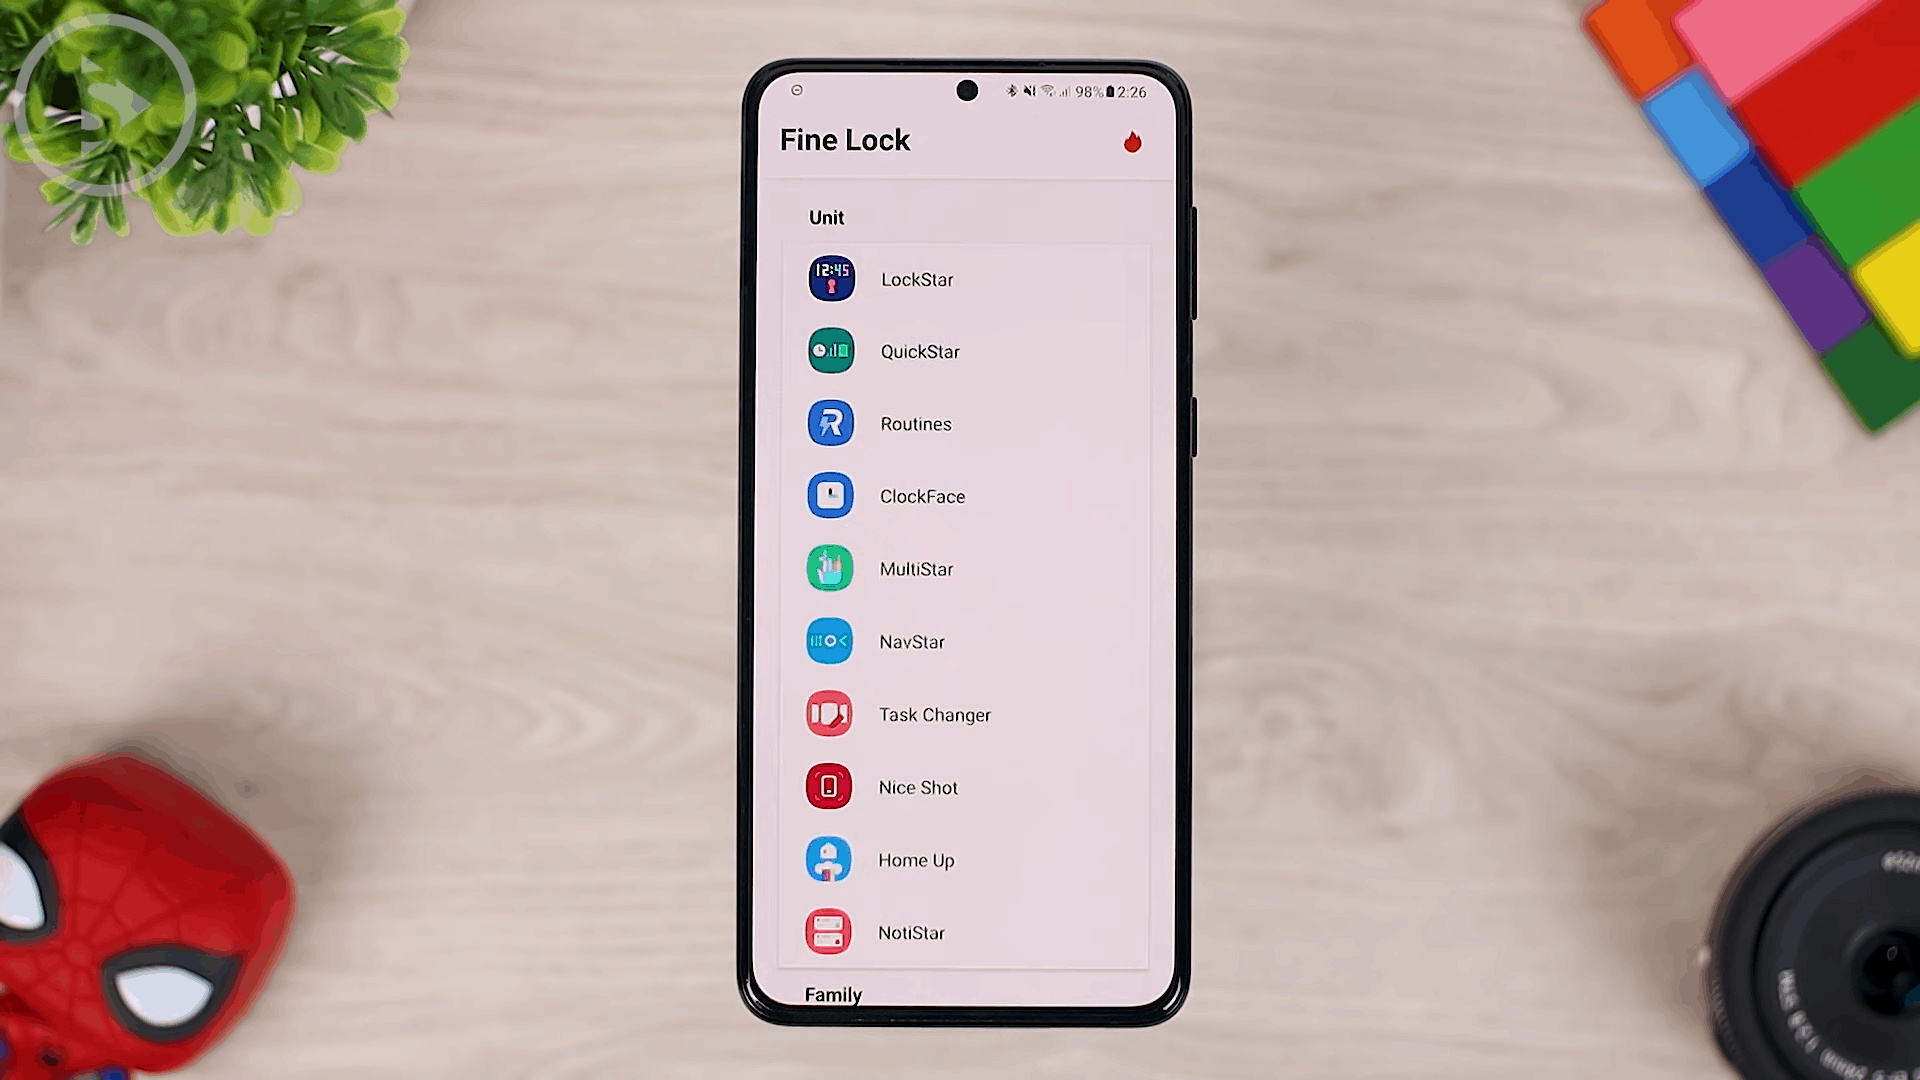 How to Install Good Lock - 8 COOL Features in the LATEST Good Lock Update April 2021